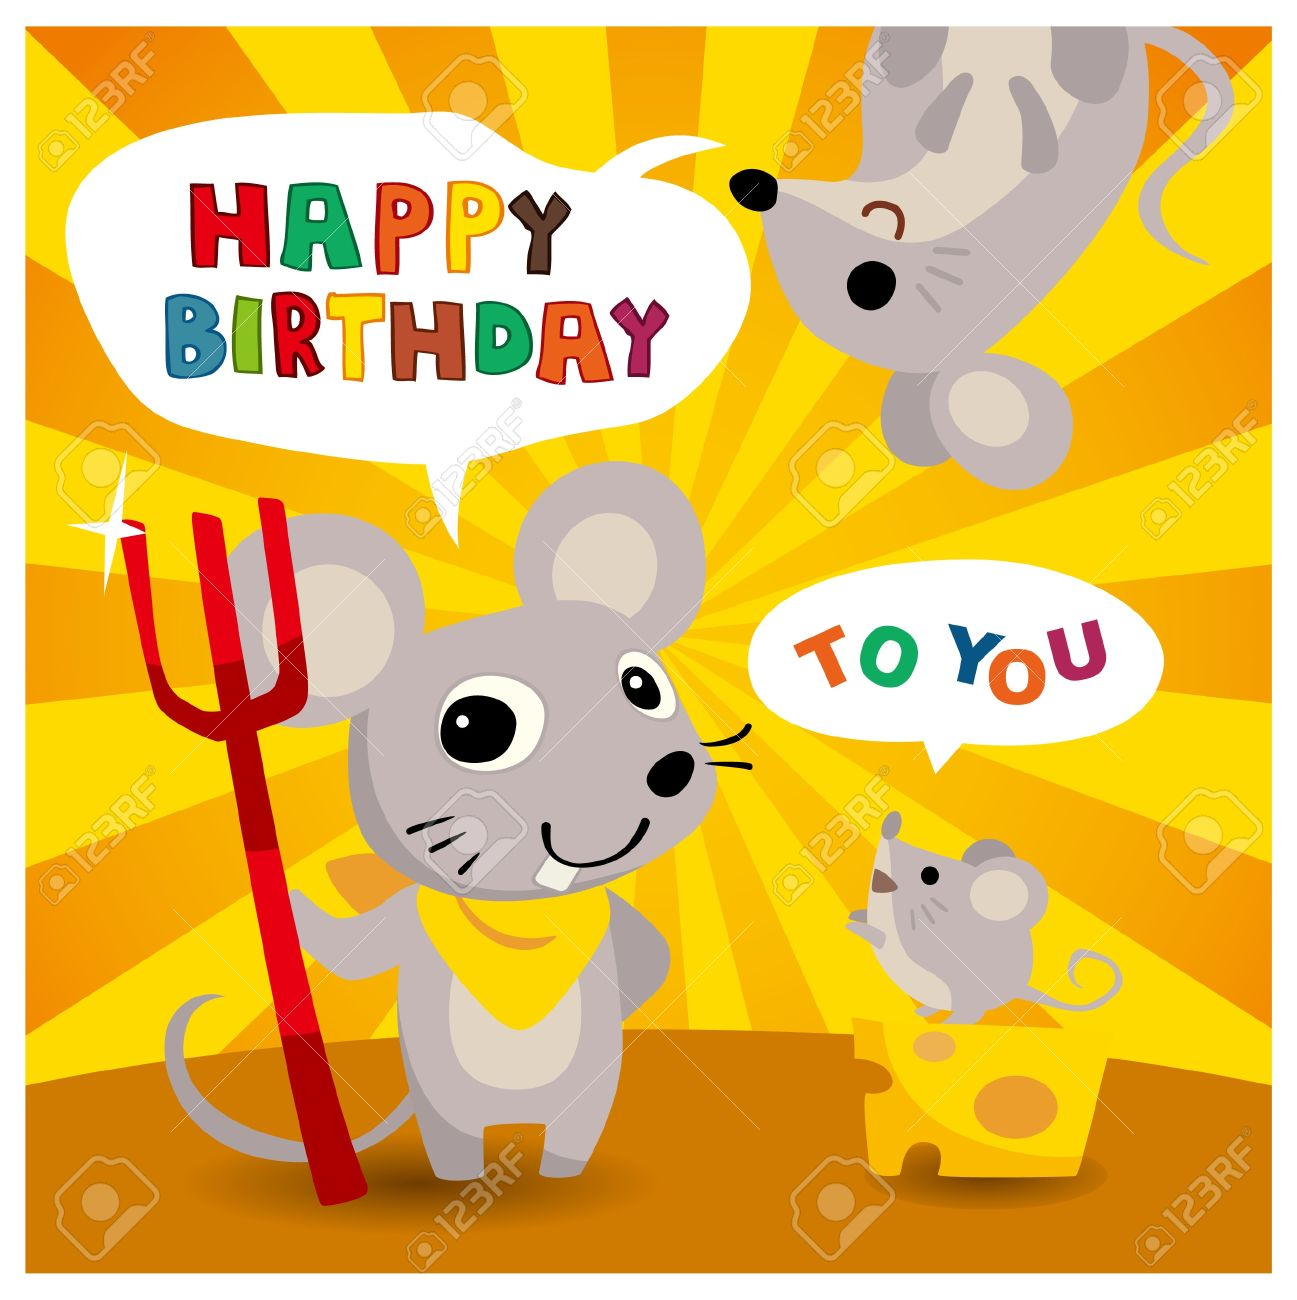 Cartoon Mouse Friend Birthday Card Royalty Free Cliparts Vectors